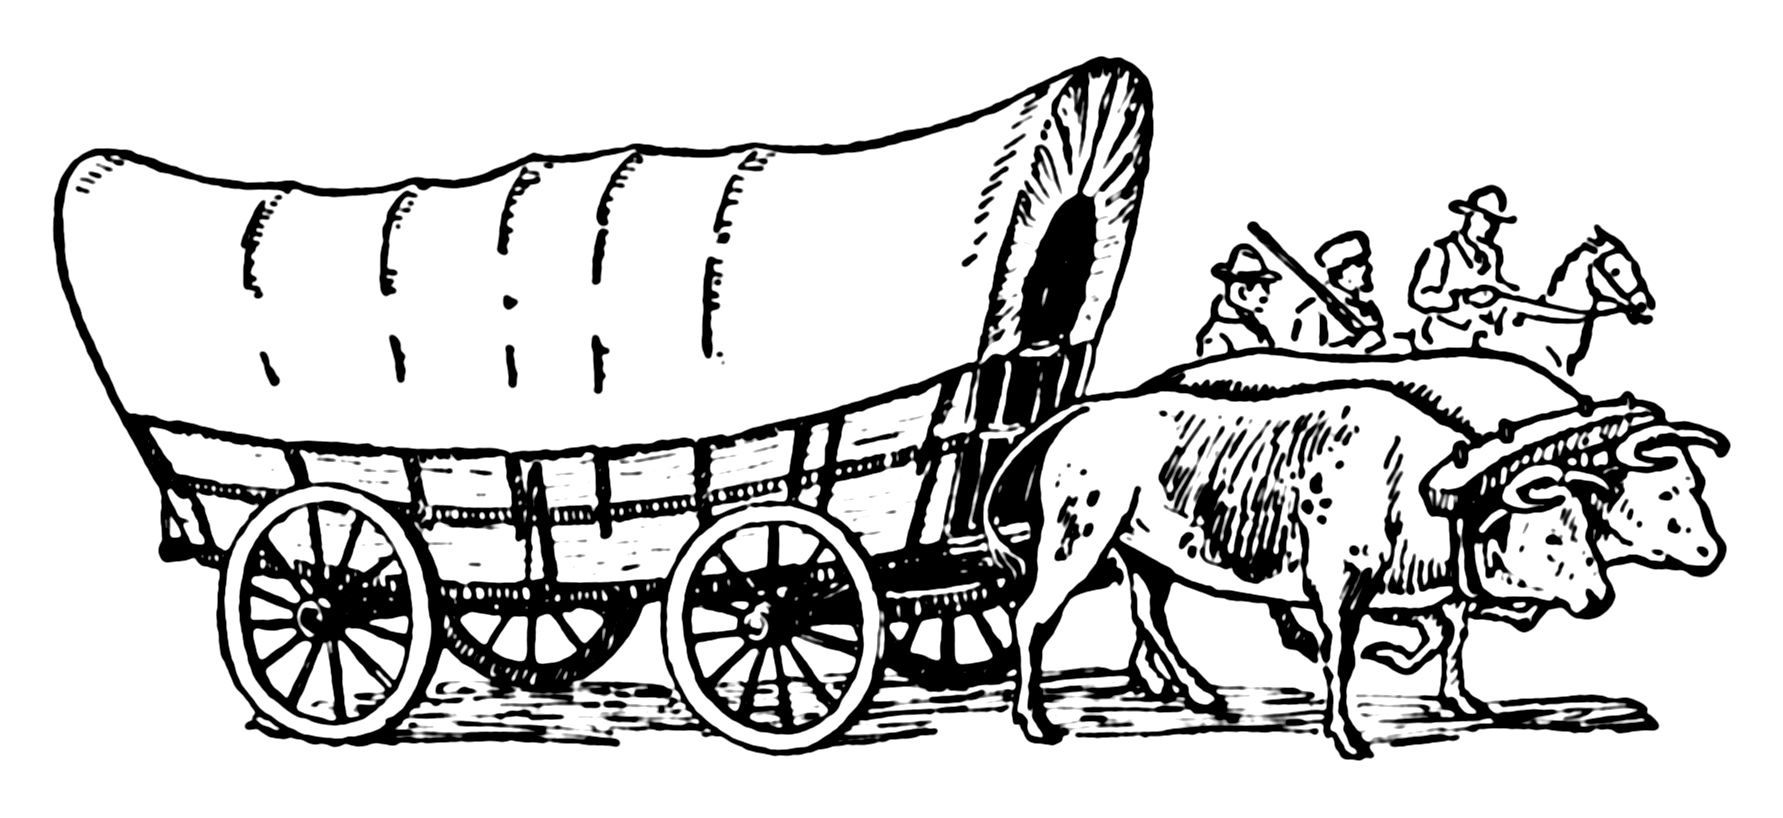 wagon trains coloring pages - photo#8